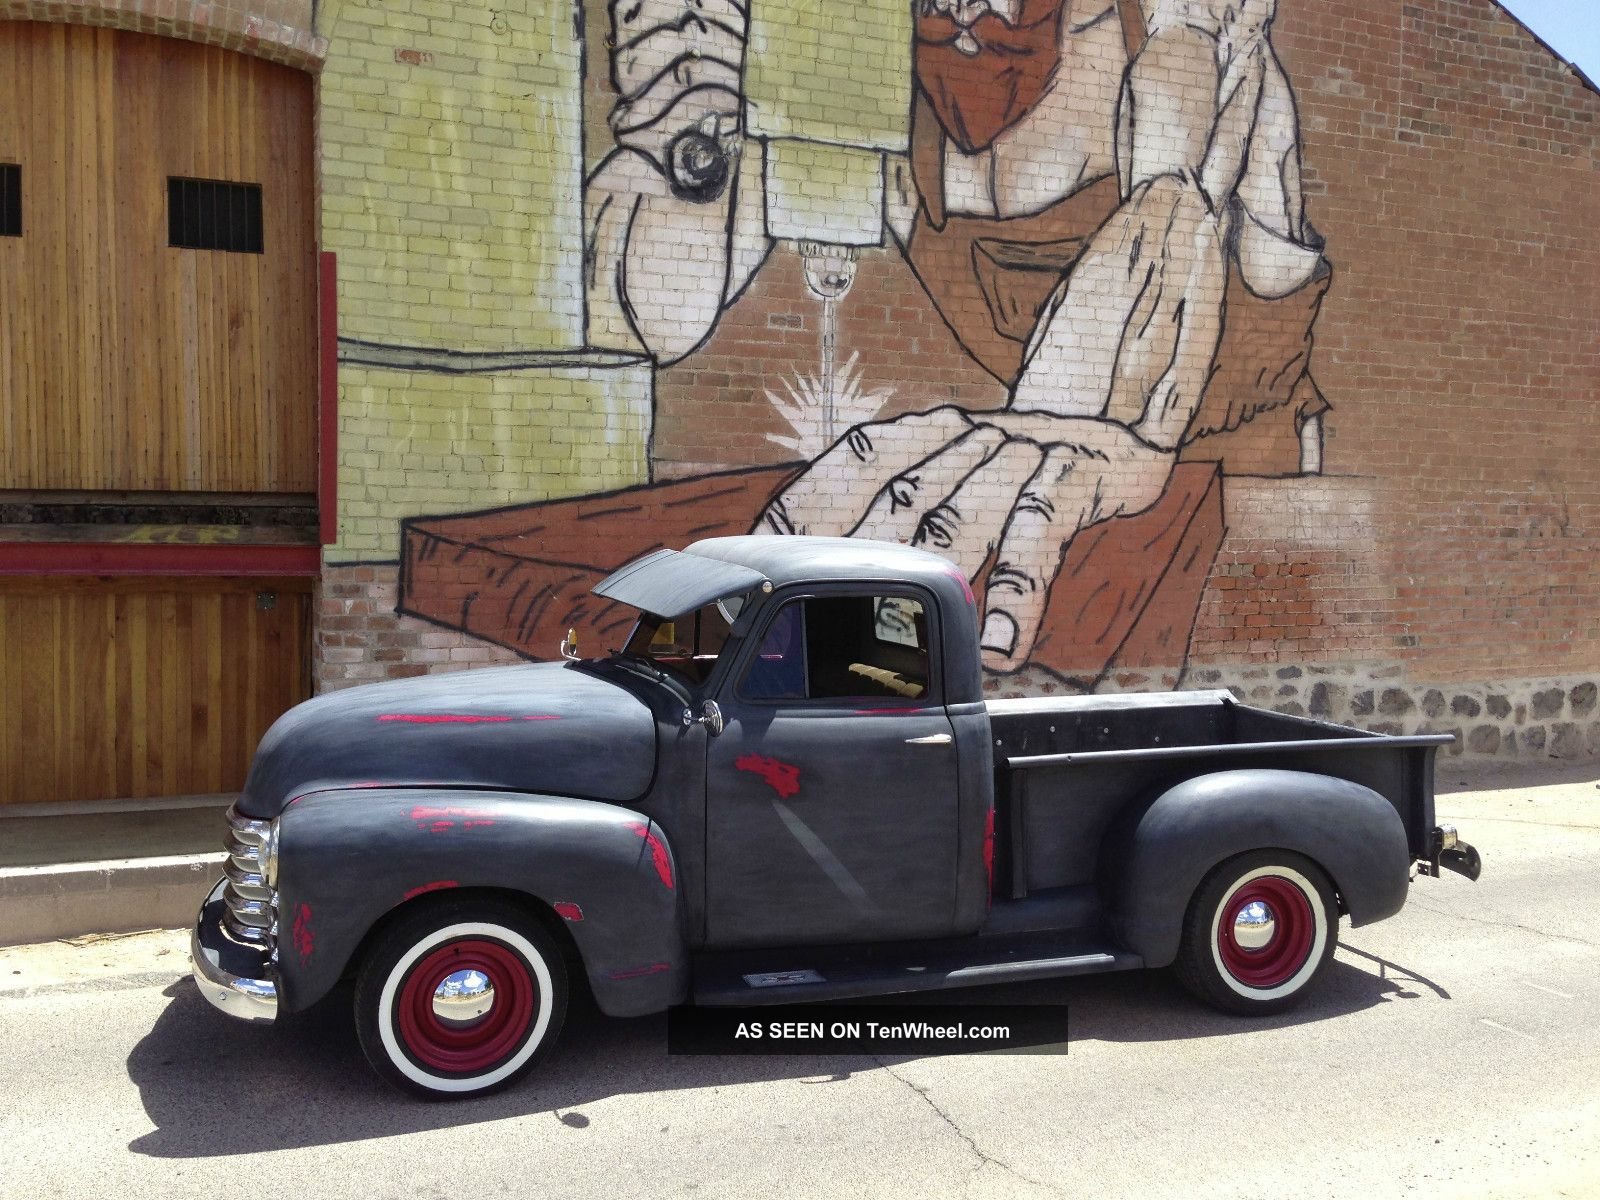 1951 Chevy Truck Arizona Pickup Rat Rod Ratrod Hot 3100 Chevrolet See My Video